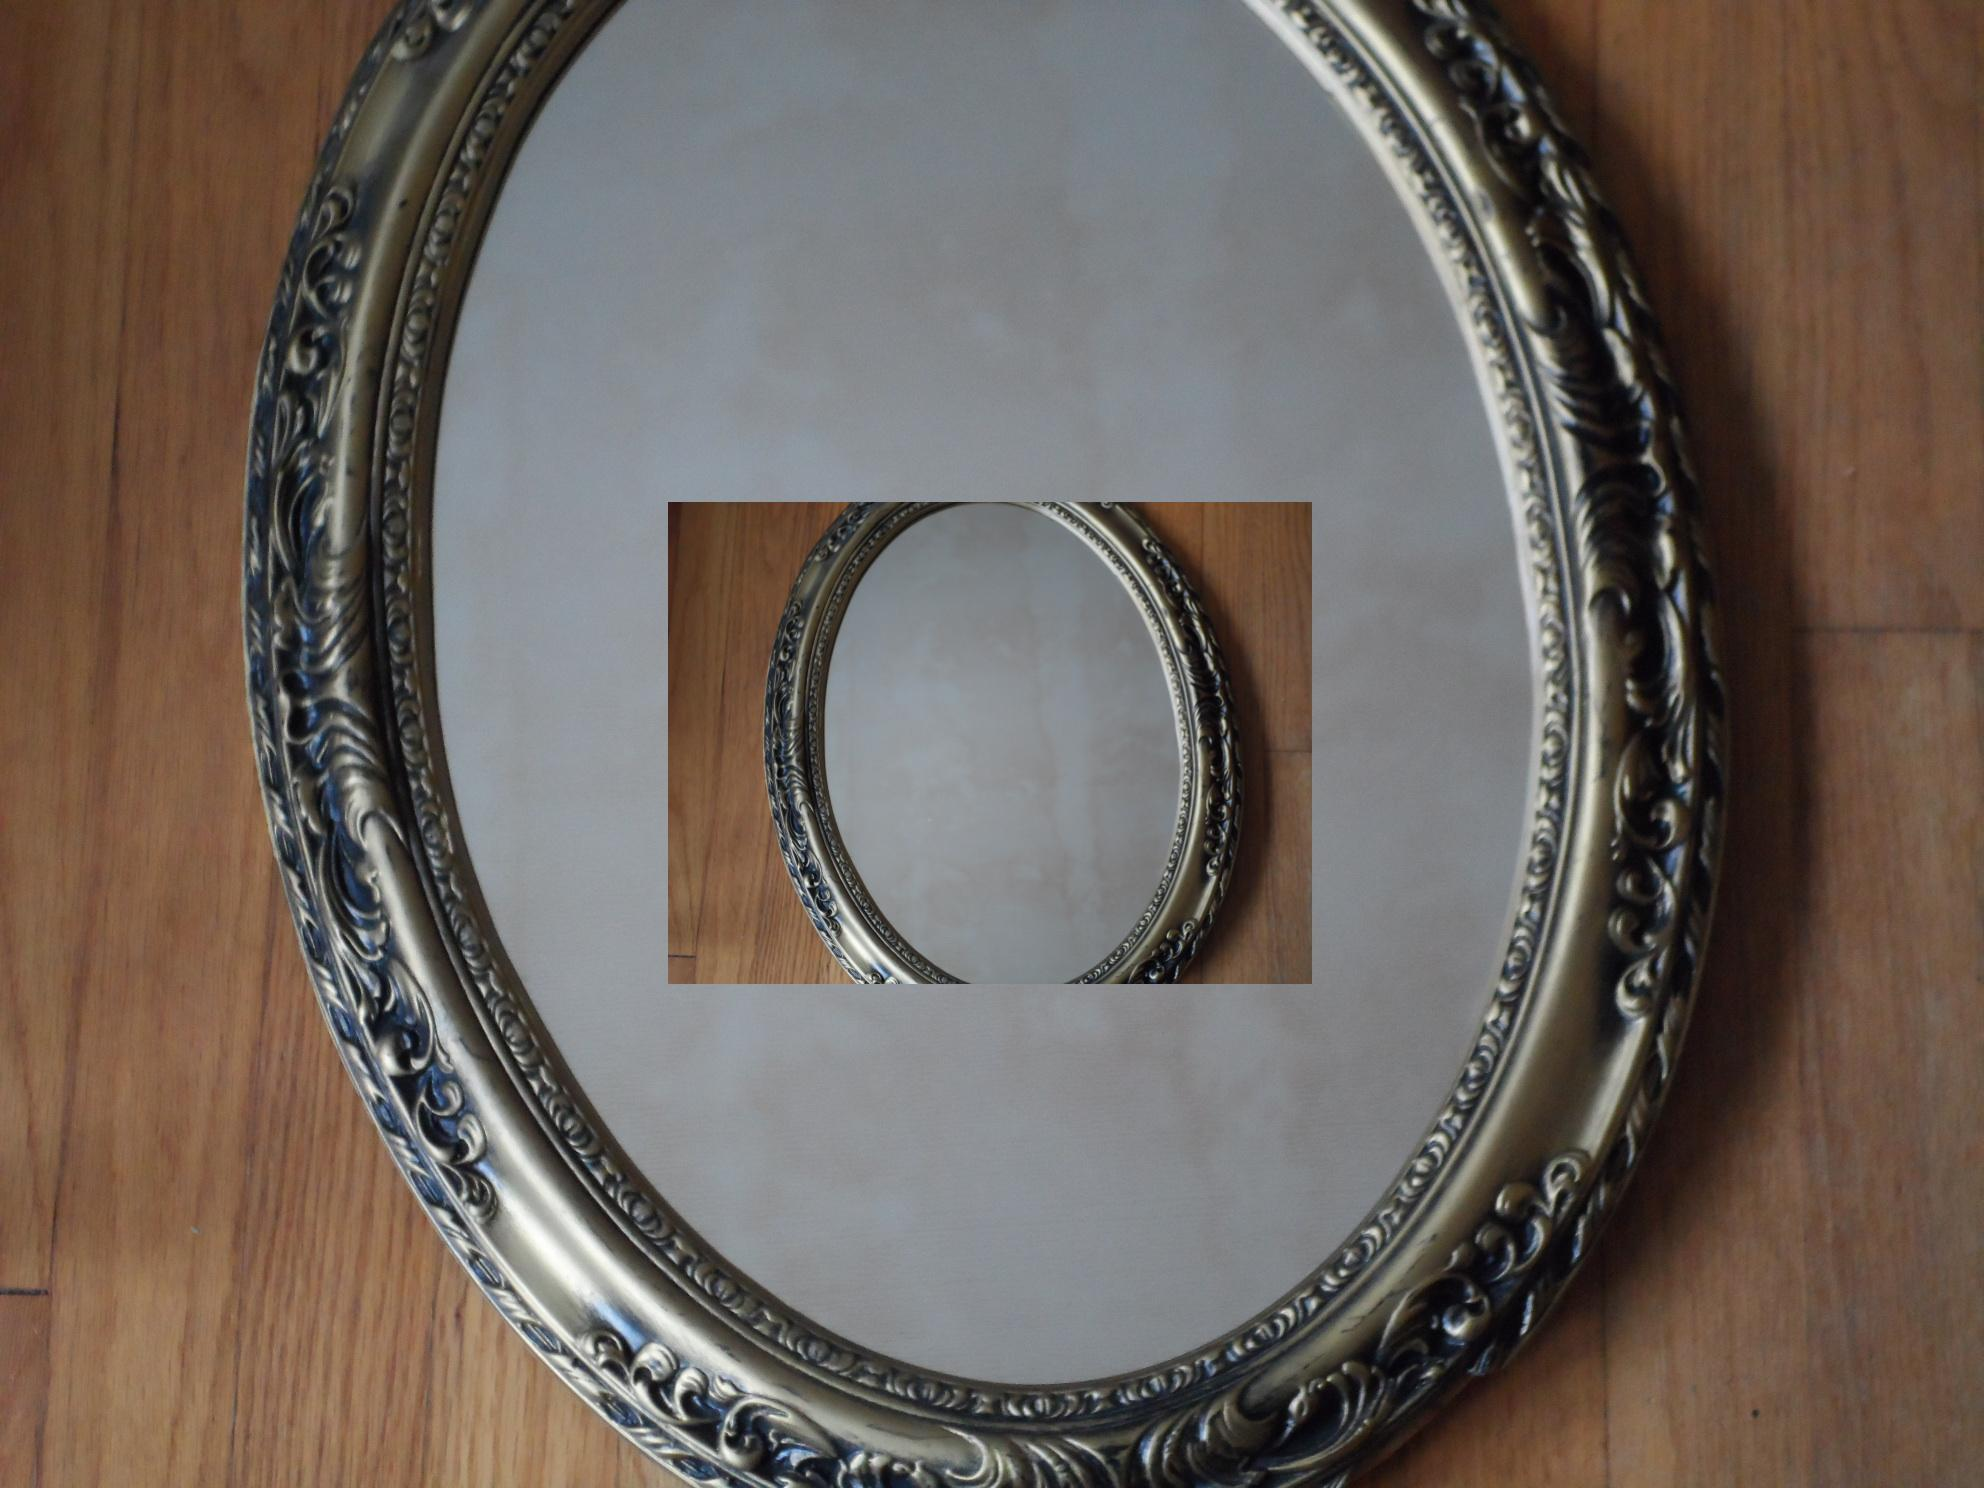 Picture of a tarnished silver frame on a wooden surface with the same image copied inside the frame, creating an image within an image.